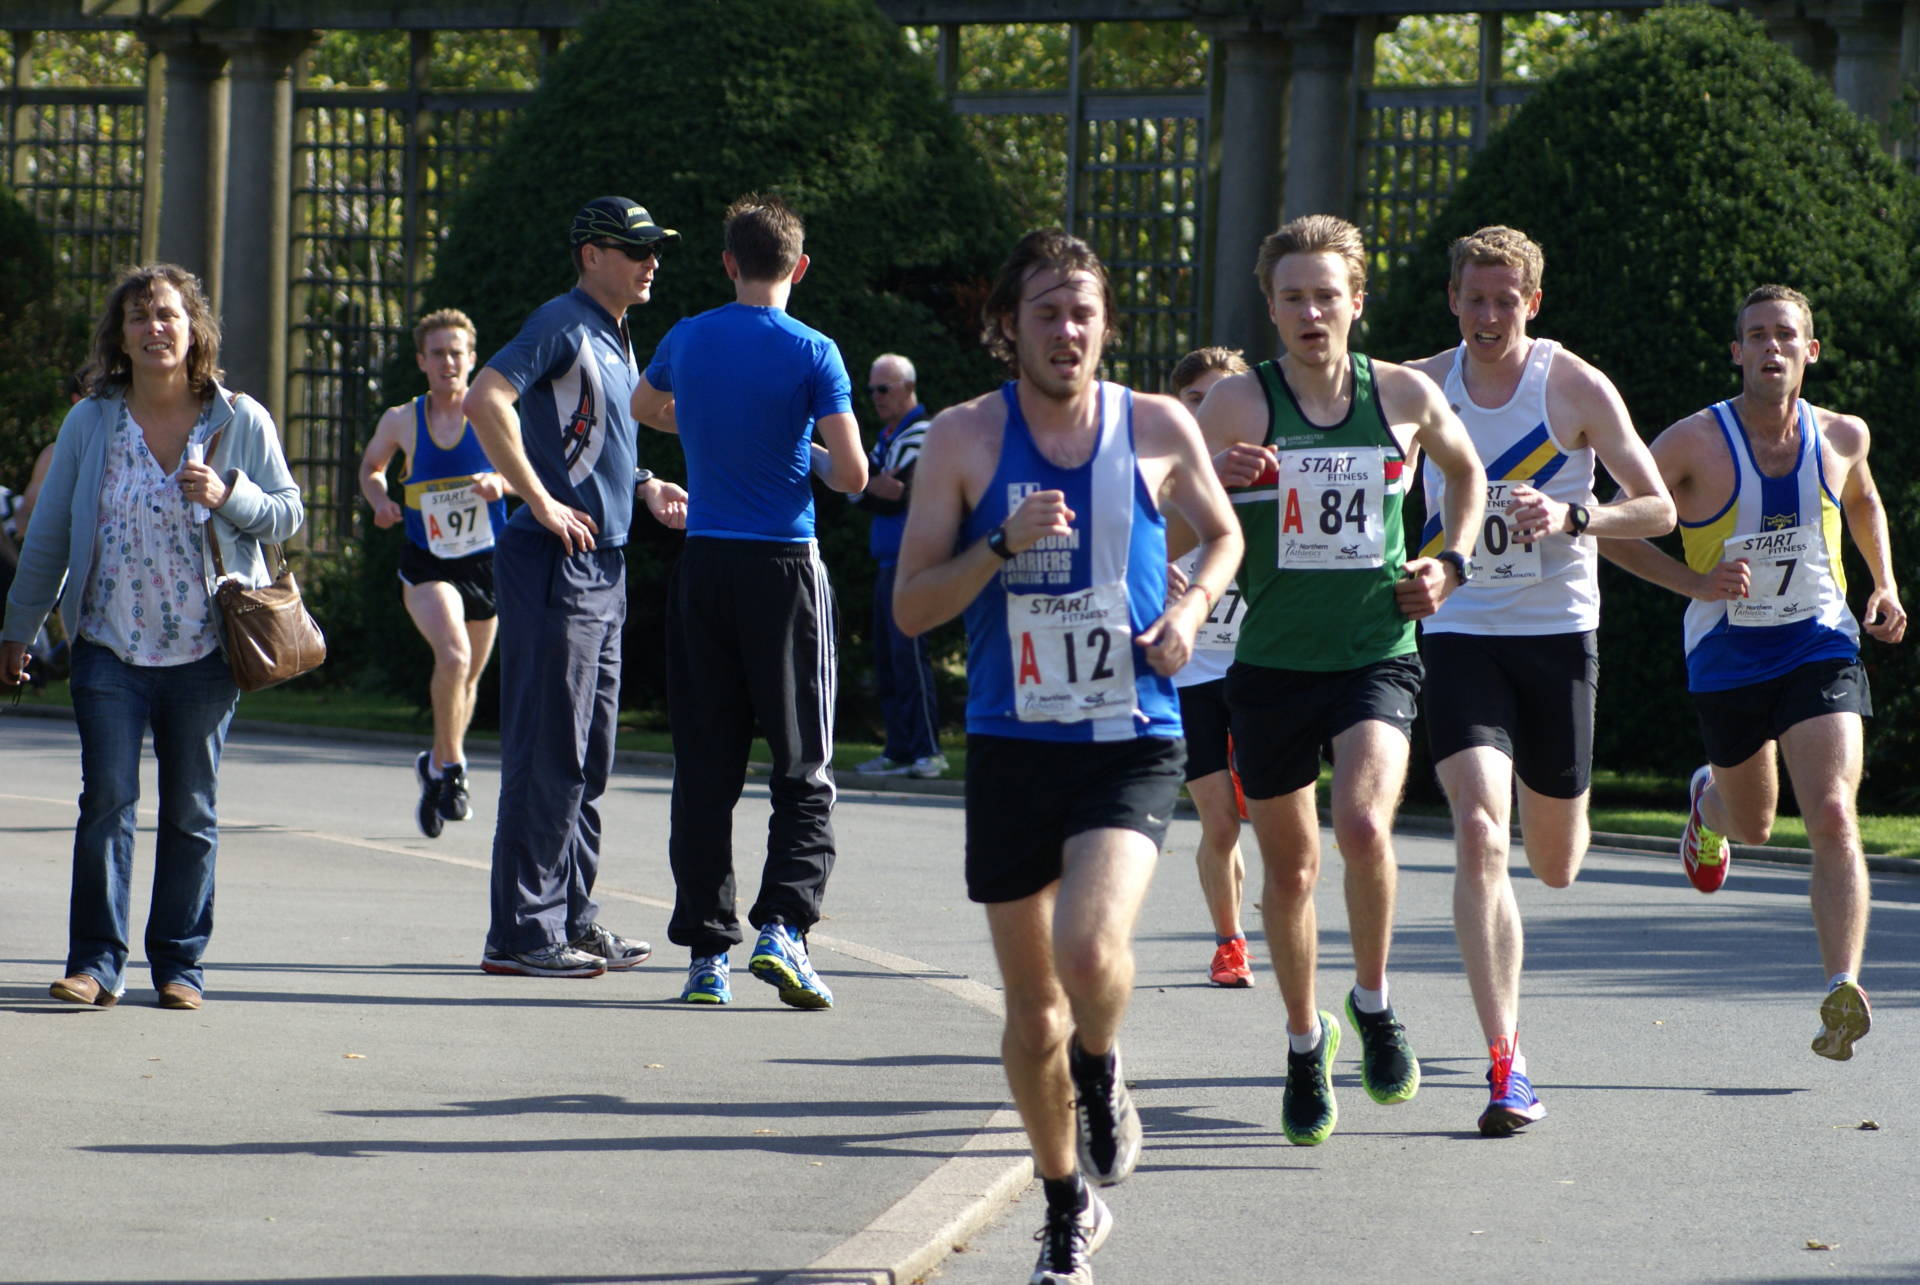 Good performances again for the Harriers at Northern Road Relays